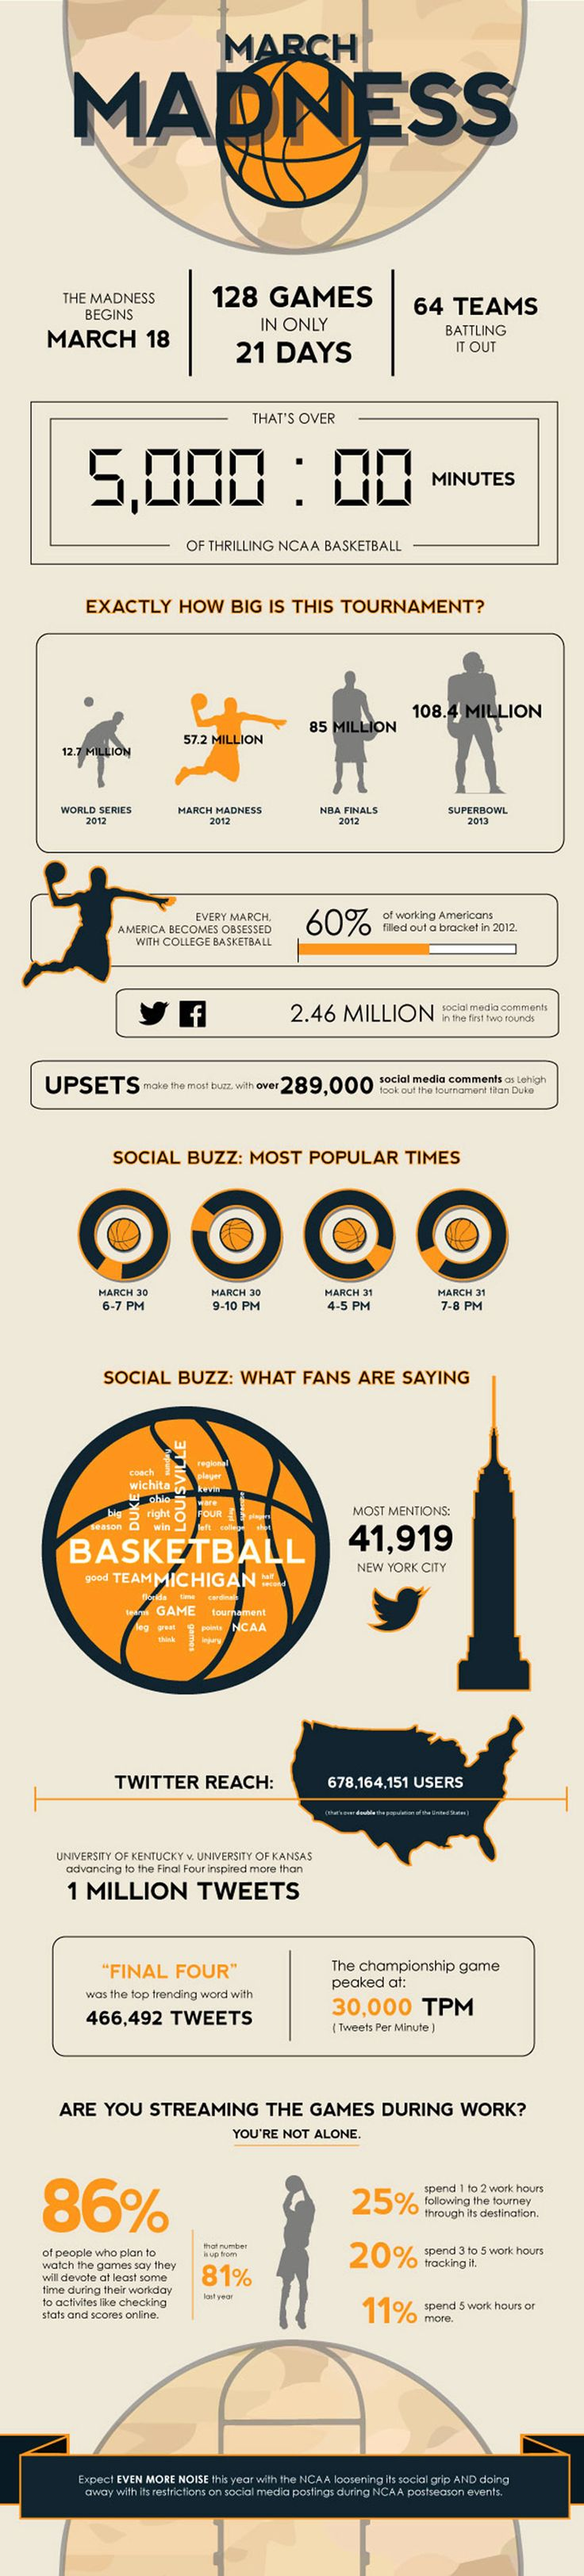 March Madness By the Numbers Infographic. Topic: college basketball